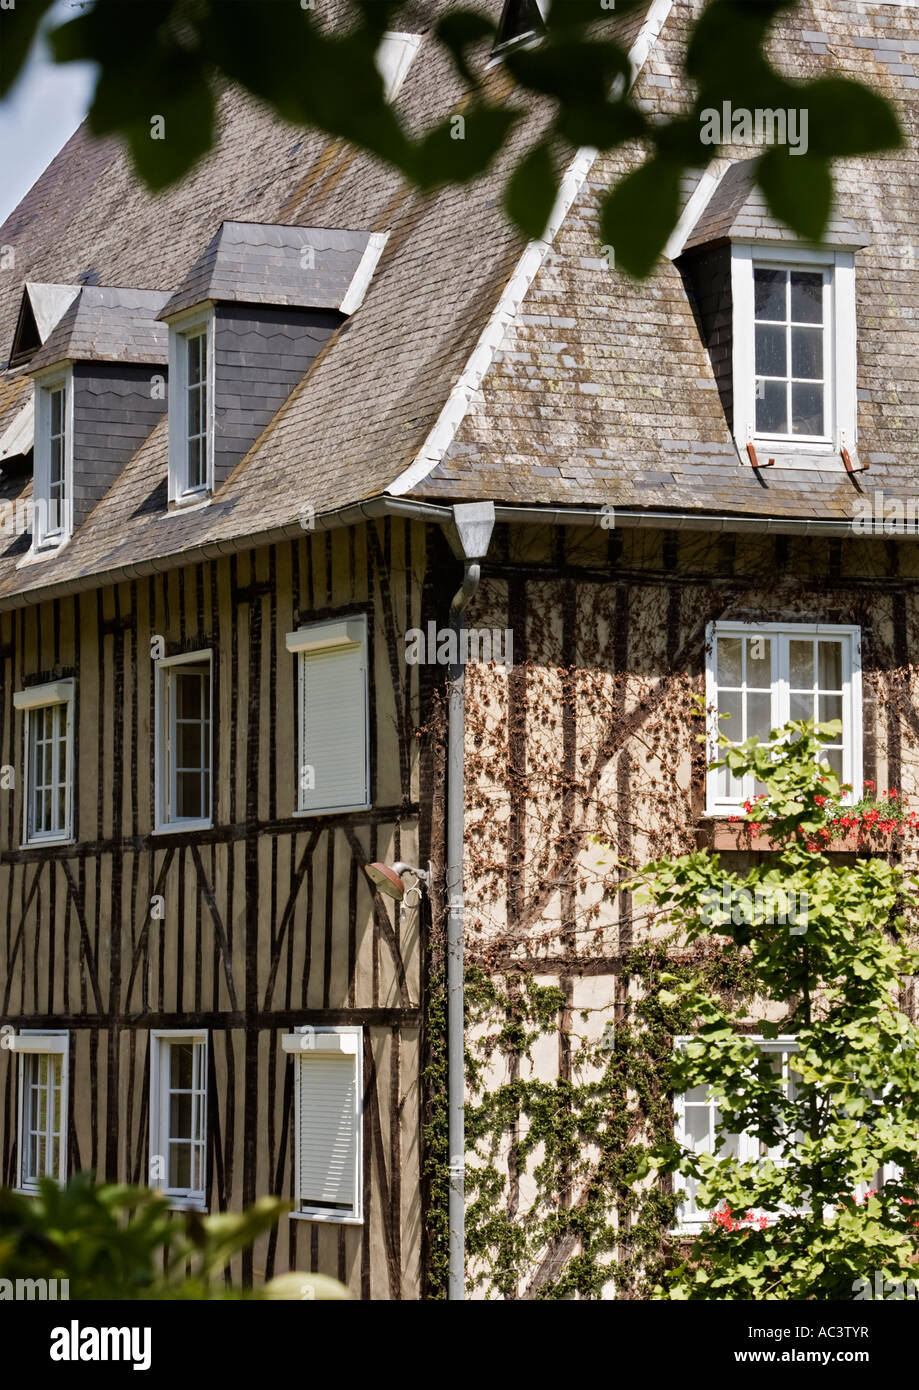 Medieval French manor house with overhanging foliage in foreground in france eu Stock Photo